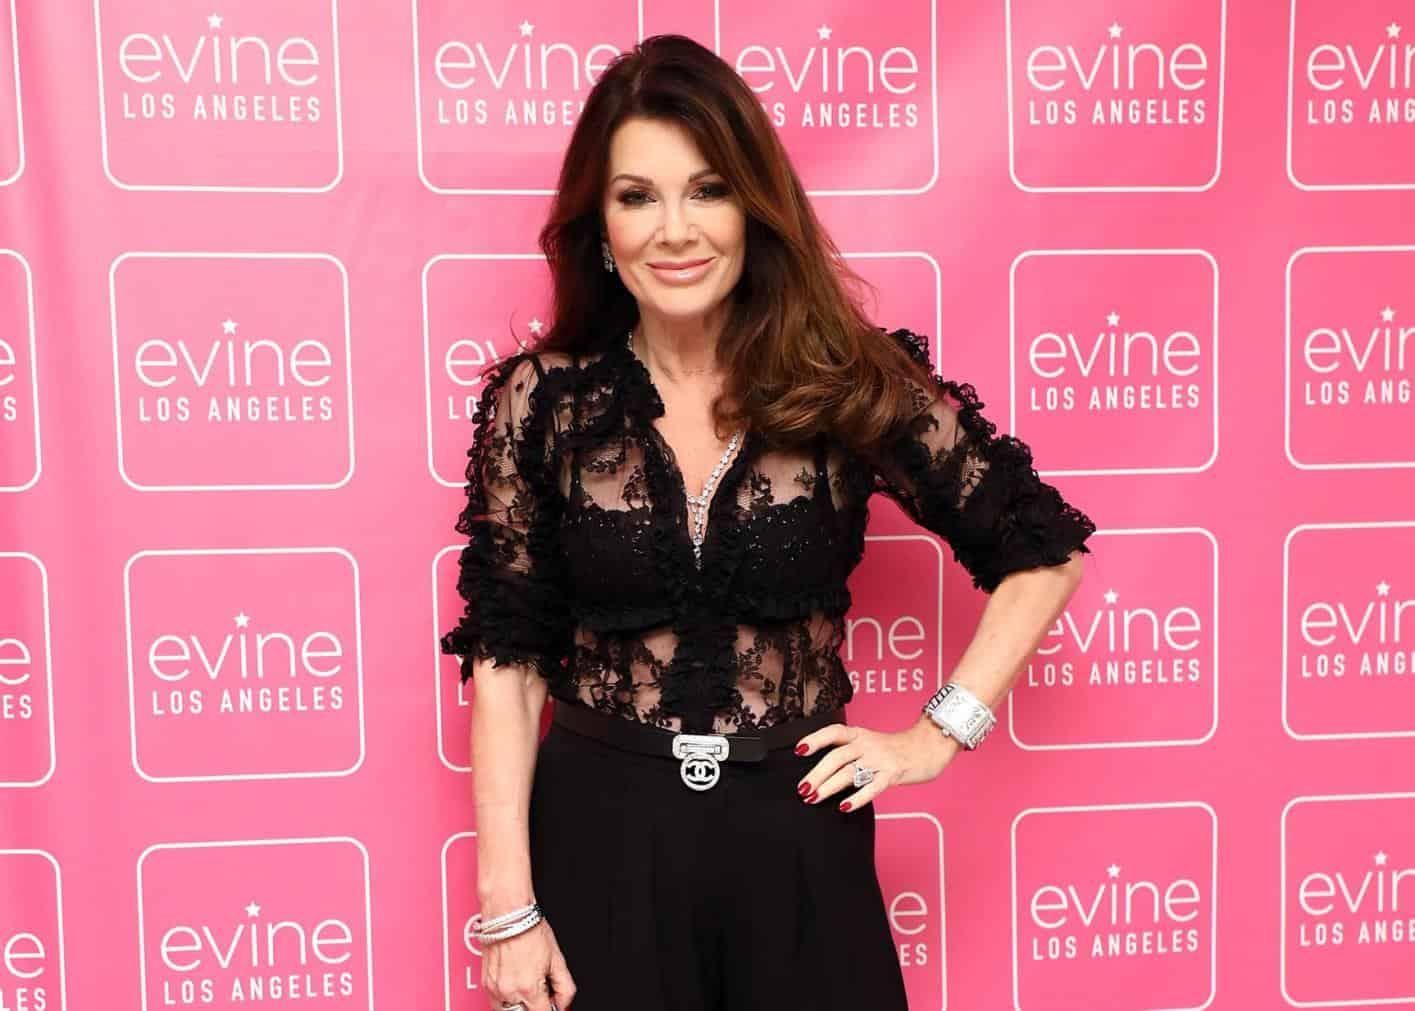 Is Lisa Vanderpump's PUMP Restaurant Shutting Down for Good? Ex-RHOBH Star Shares Cryptic Post About New Restrictions in L.A. as Rental Company is Seen Cleaning Out Venue